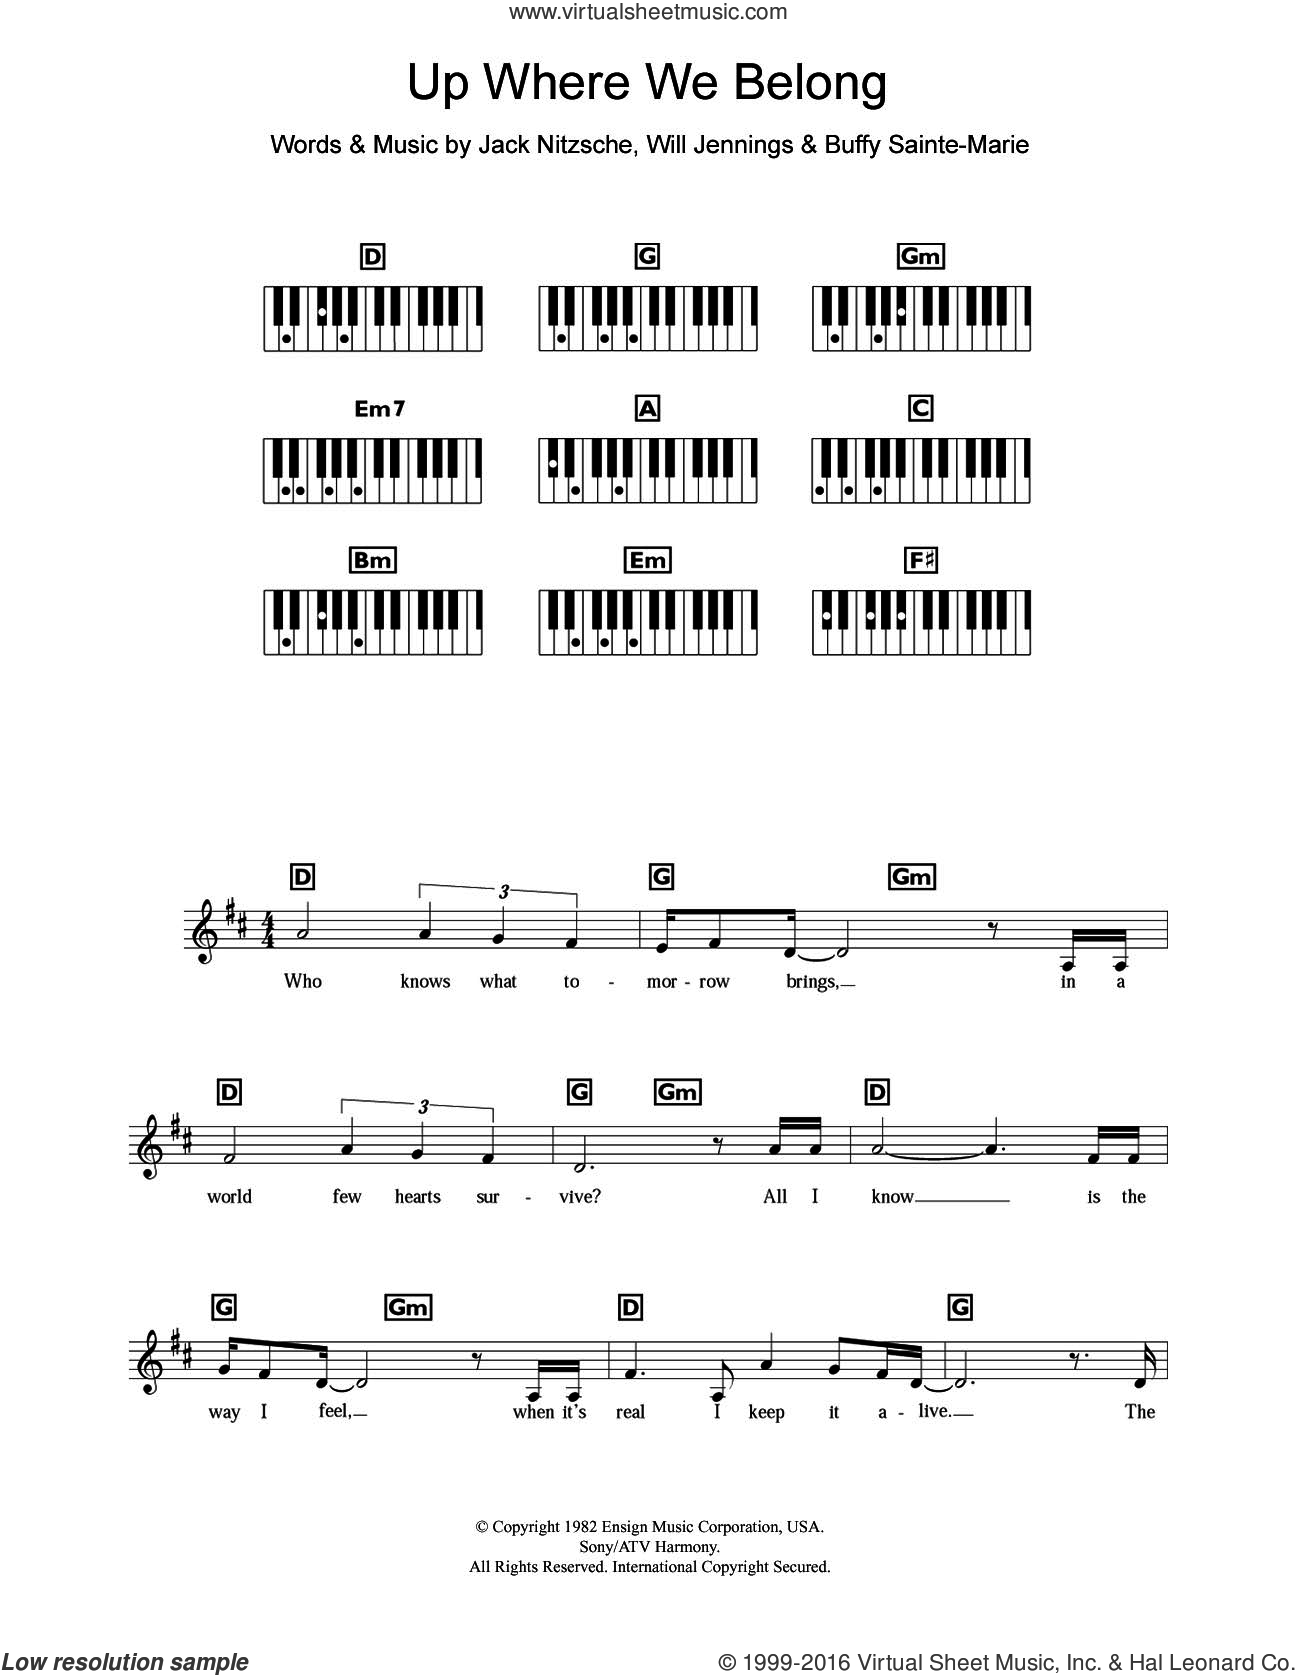 Up Where We Belong (from An Officer And A Gentleman) sheet music for piano solo (chords, lyrics, melody) by Will Jennings, Jennifer Warnes, Joe Cocker, Buffy Sainte-Marie and Jack Nitzsche. Score Image Preview.